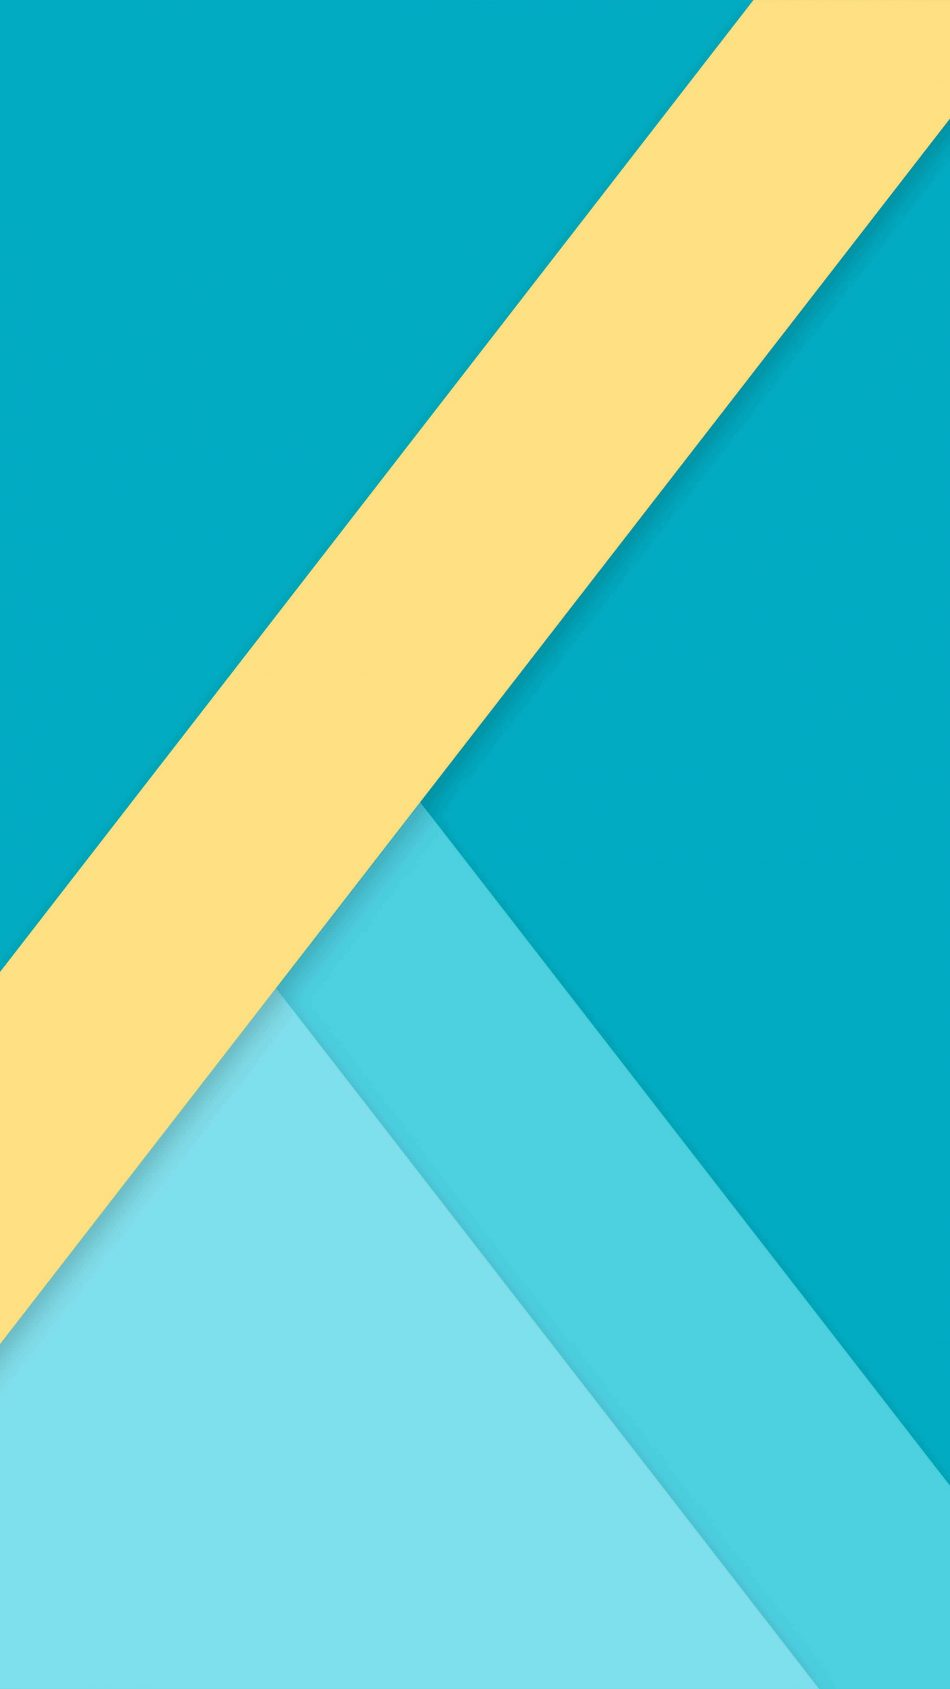 Geometric Blue Yellow 4K Ultra HD Mobile Wallpaper